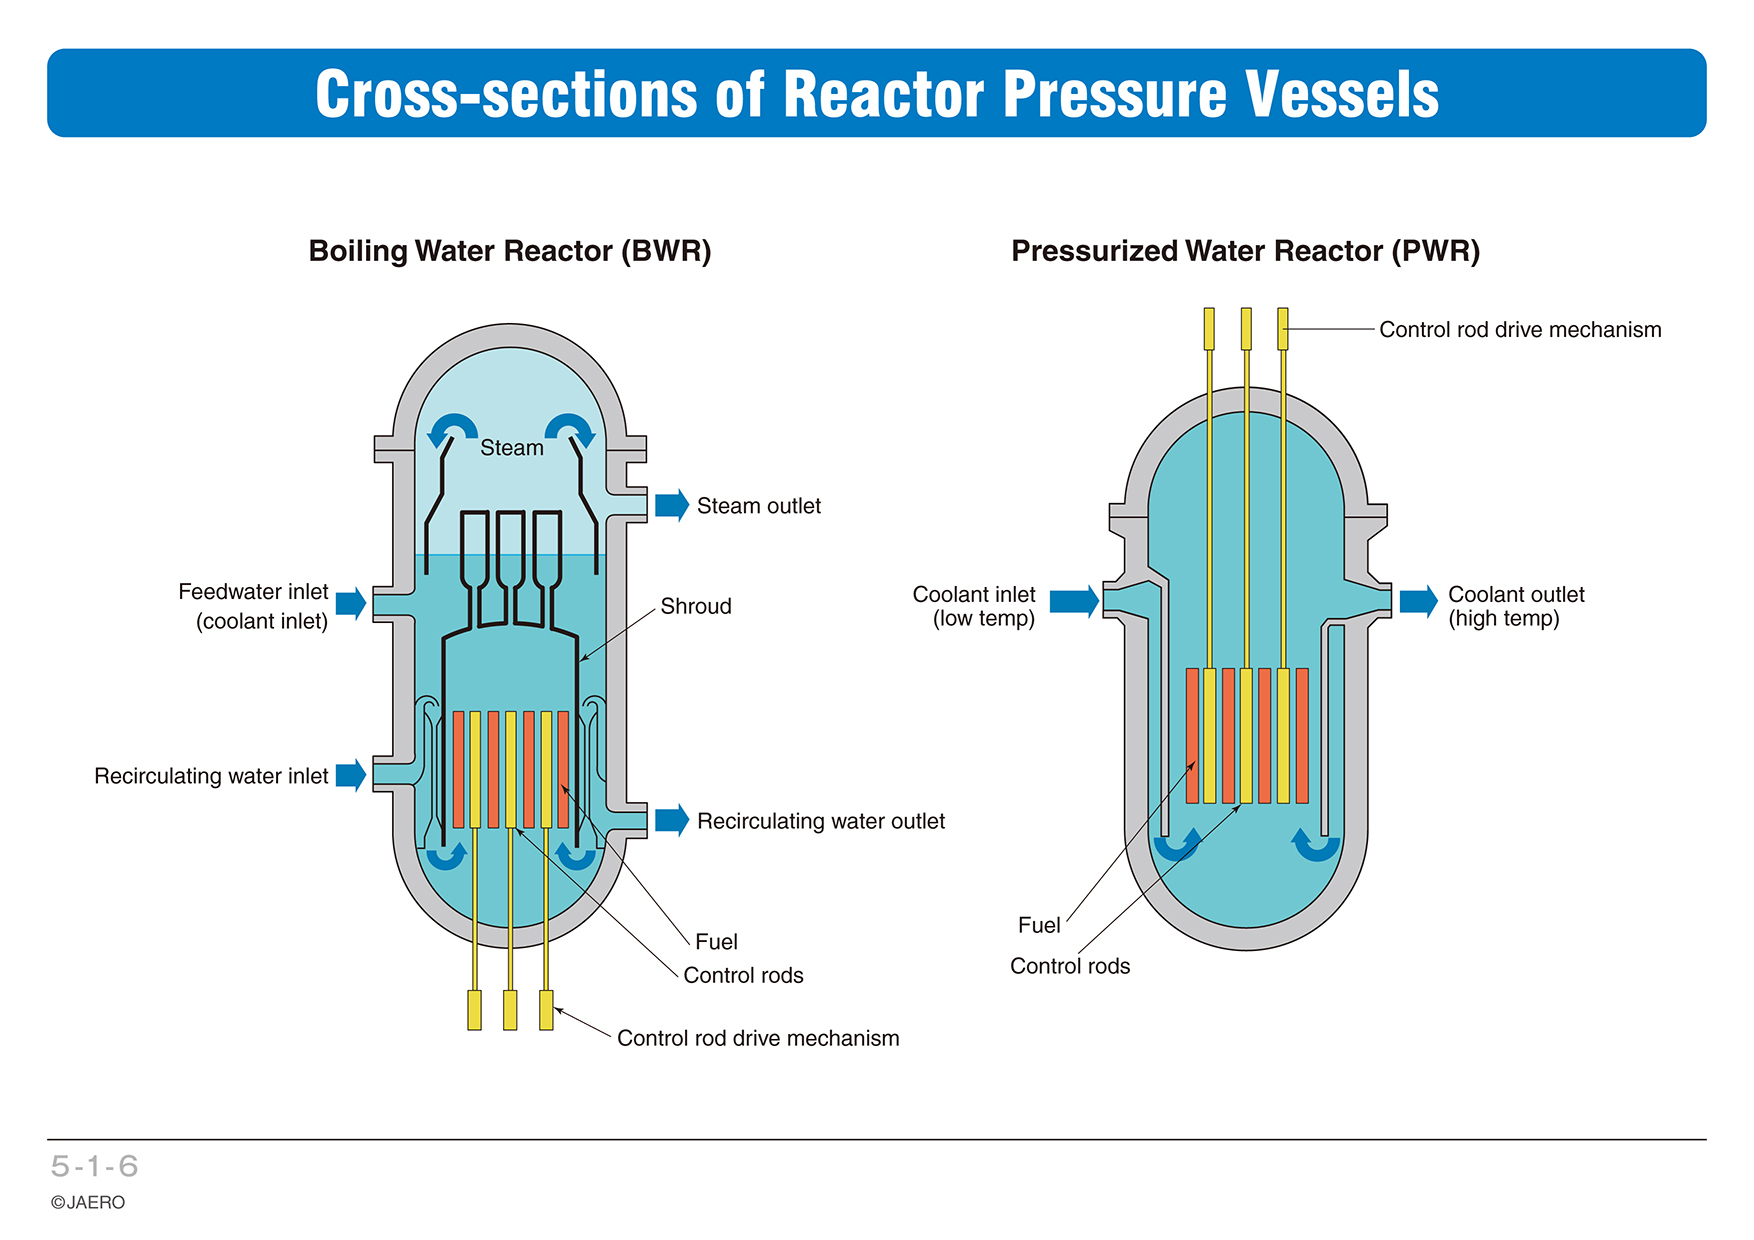 Chapter 5 Safety Of Nuclear Power Generation Plant Diagram Boiling Water Reactor 1 6cross Sections Pressure Vessels